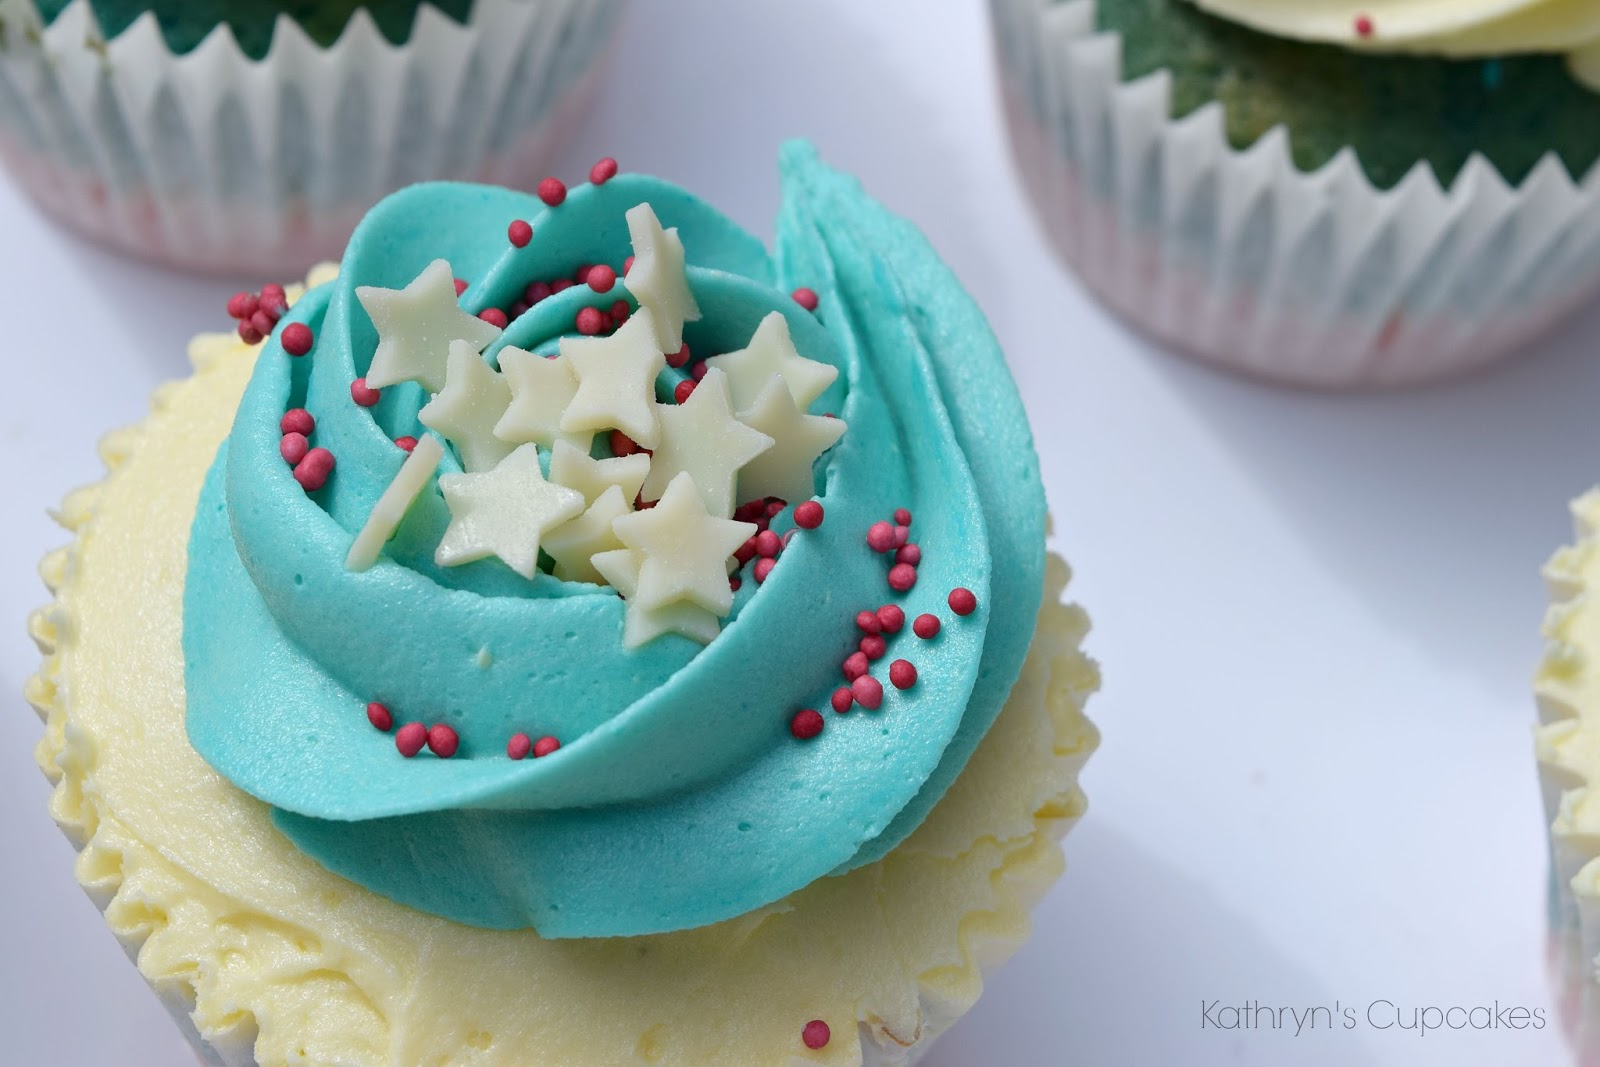 Cupcakes, America, Themed, Red, White, Blue,Stars, Vanilla, Buttercream, Ideas, Decorations